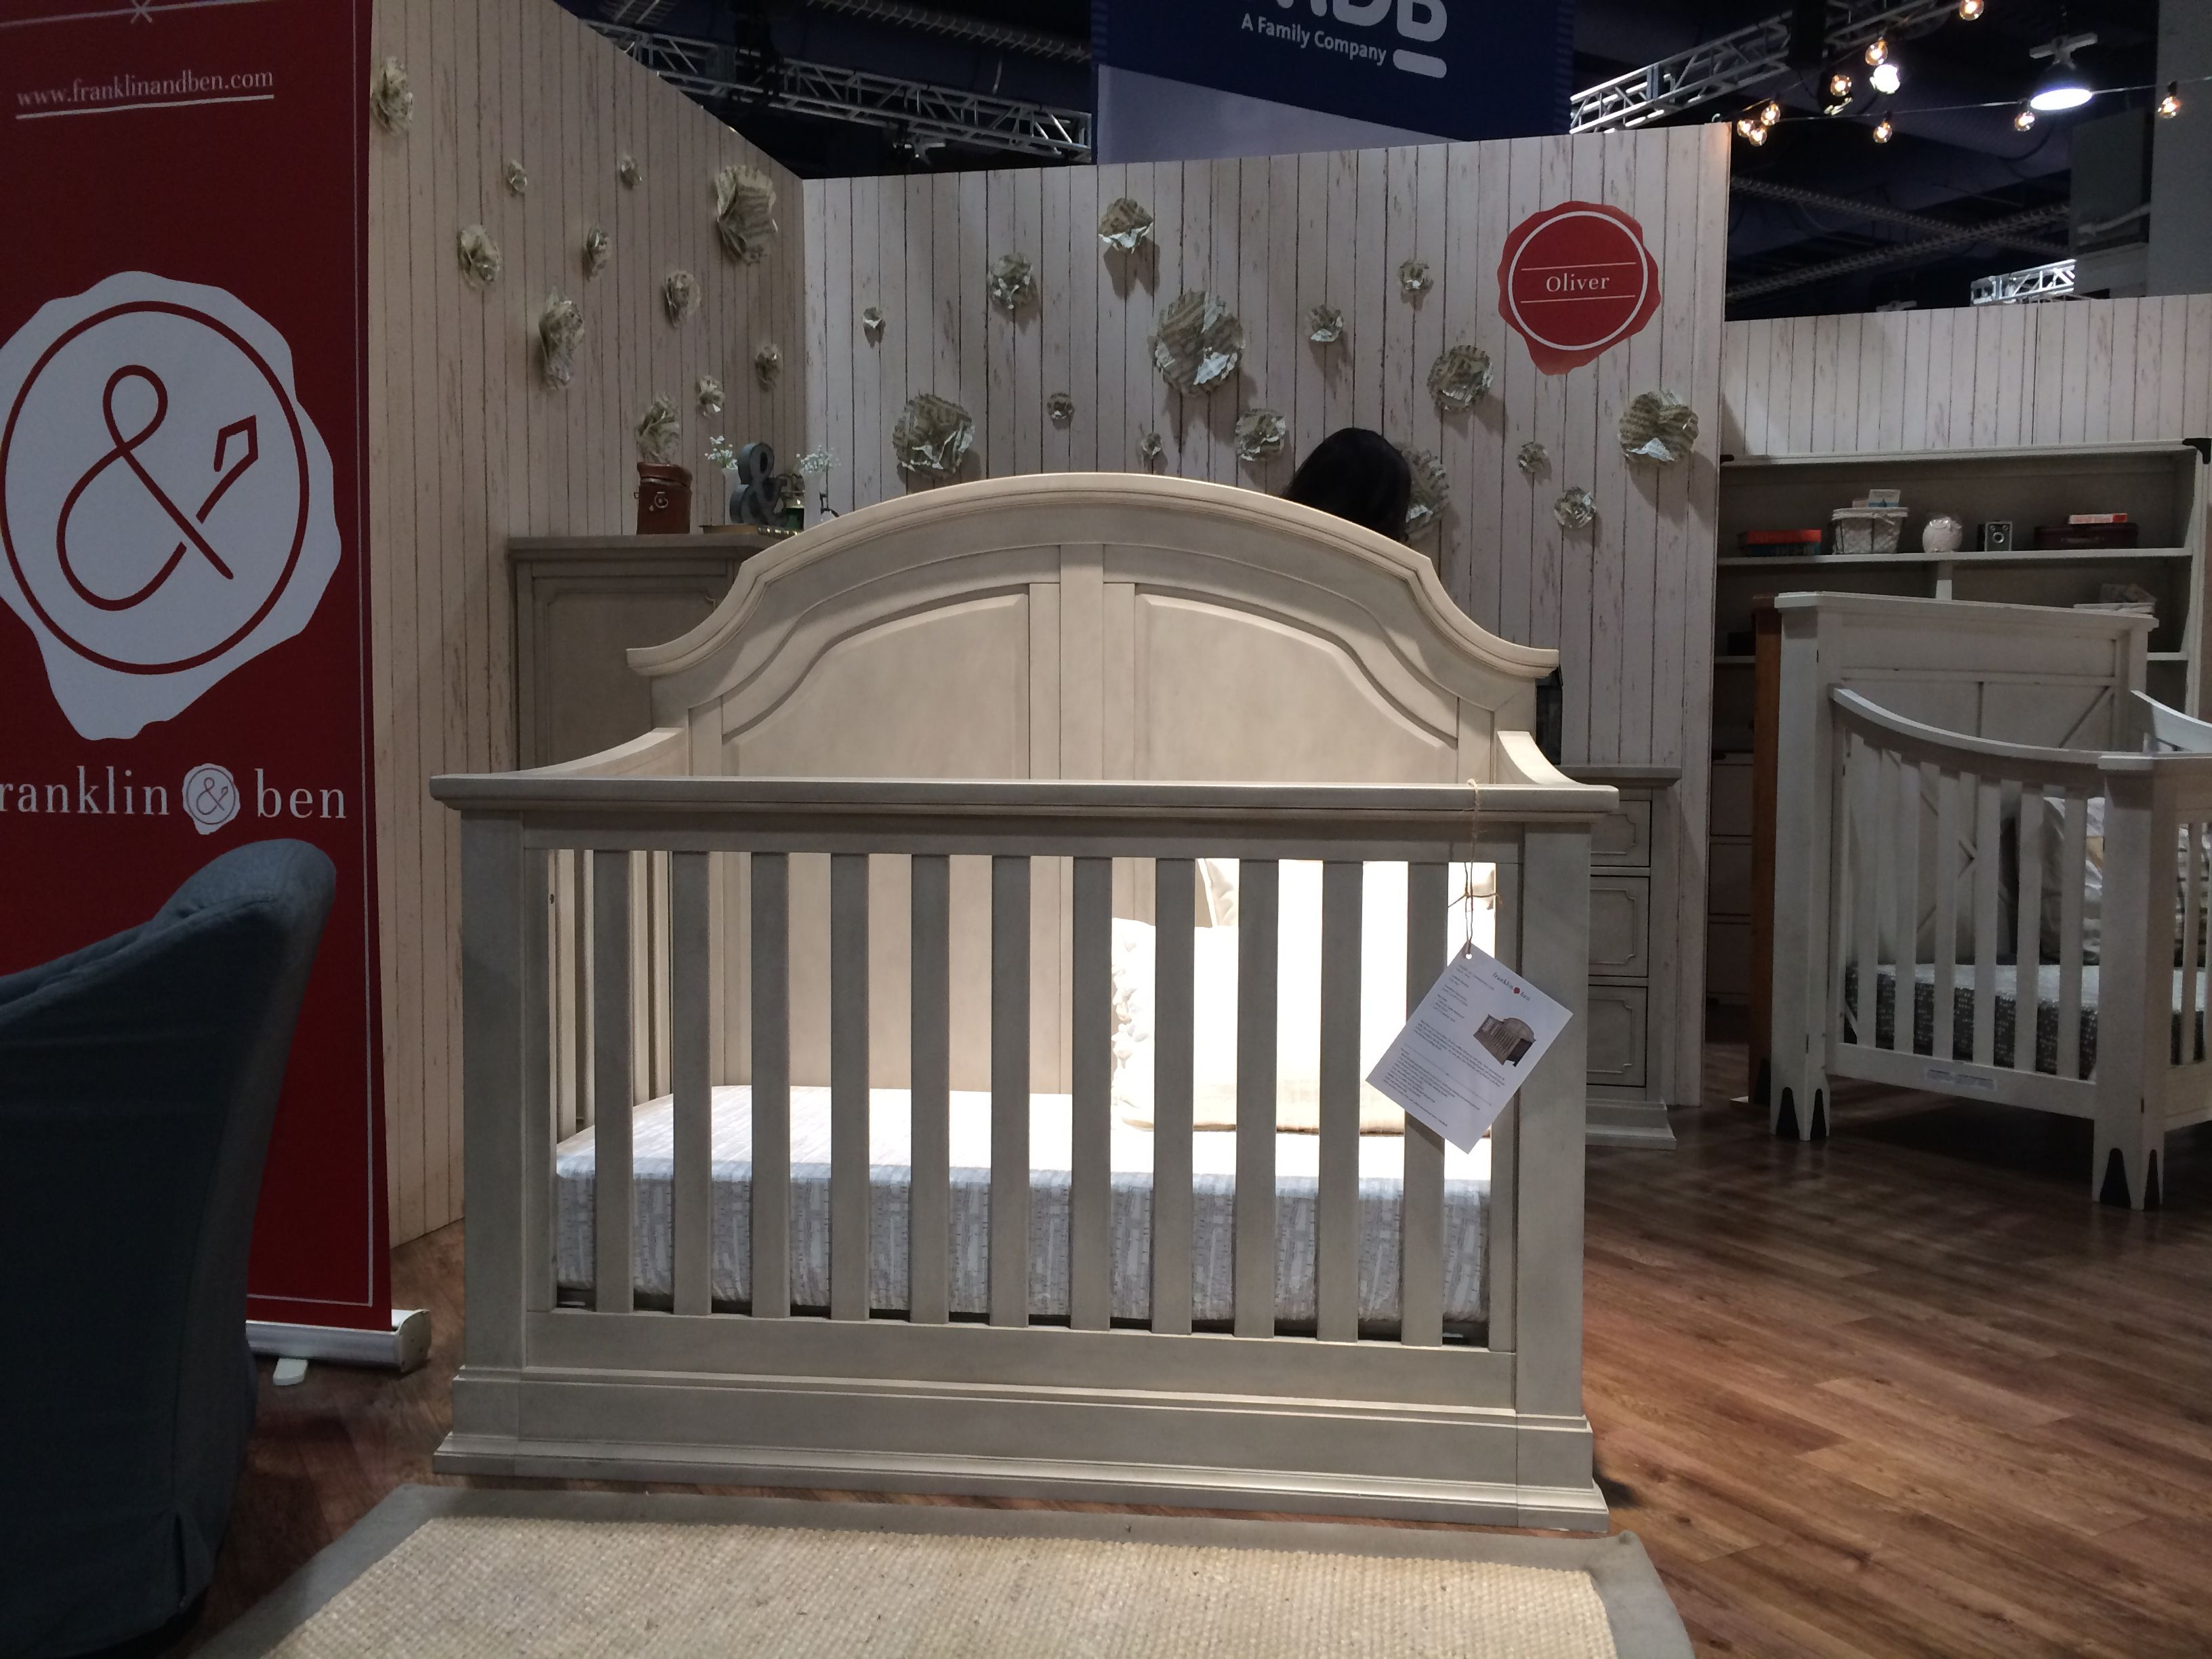 Crib for sale gatineau - Here S A Look At The Oliver Crib From Franklin Ben In The Abckidsexpo